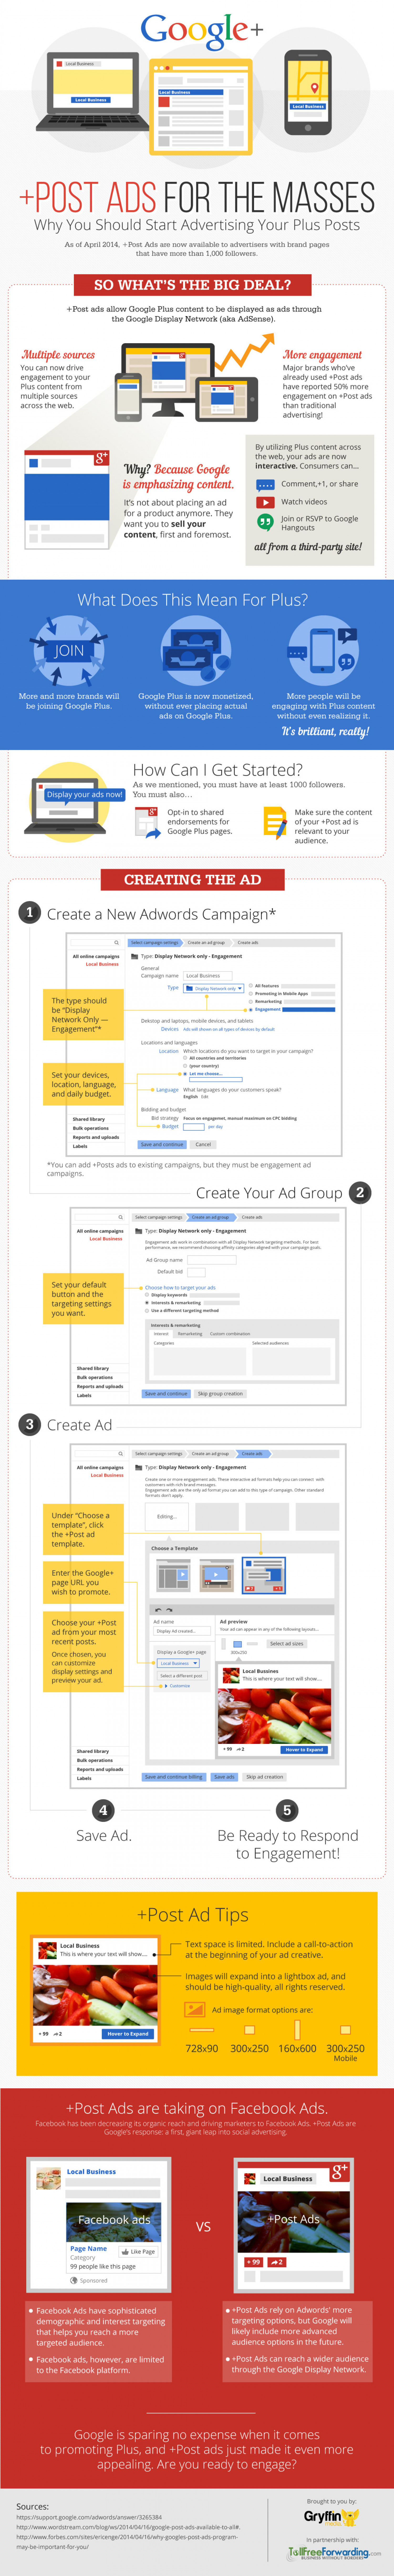 +Post Ads for the Masses Infographic